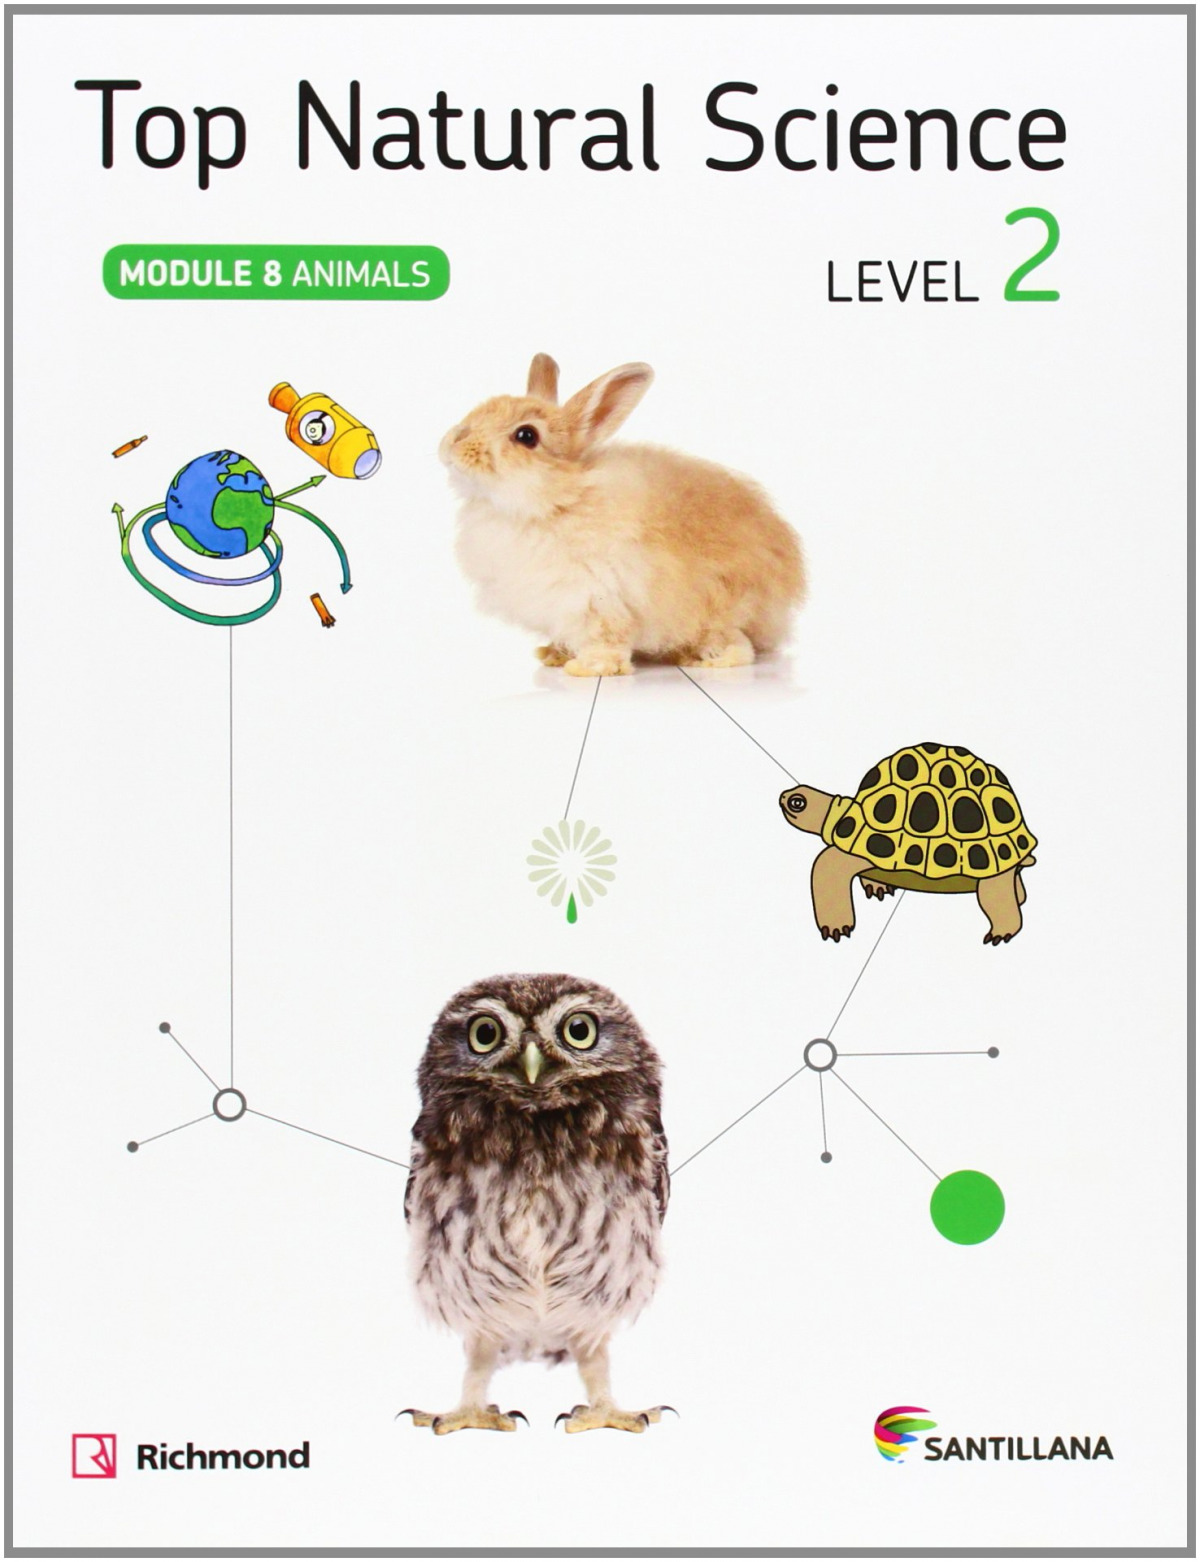 Top natural science 2. Animals